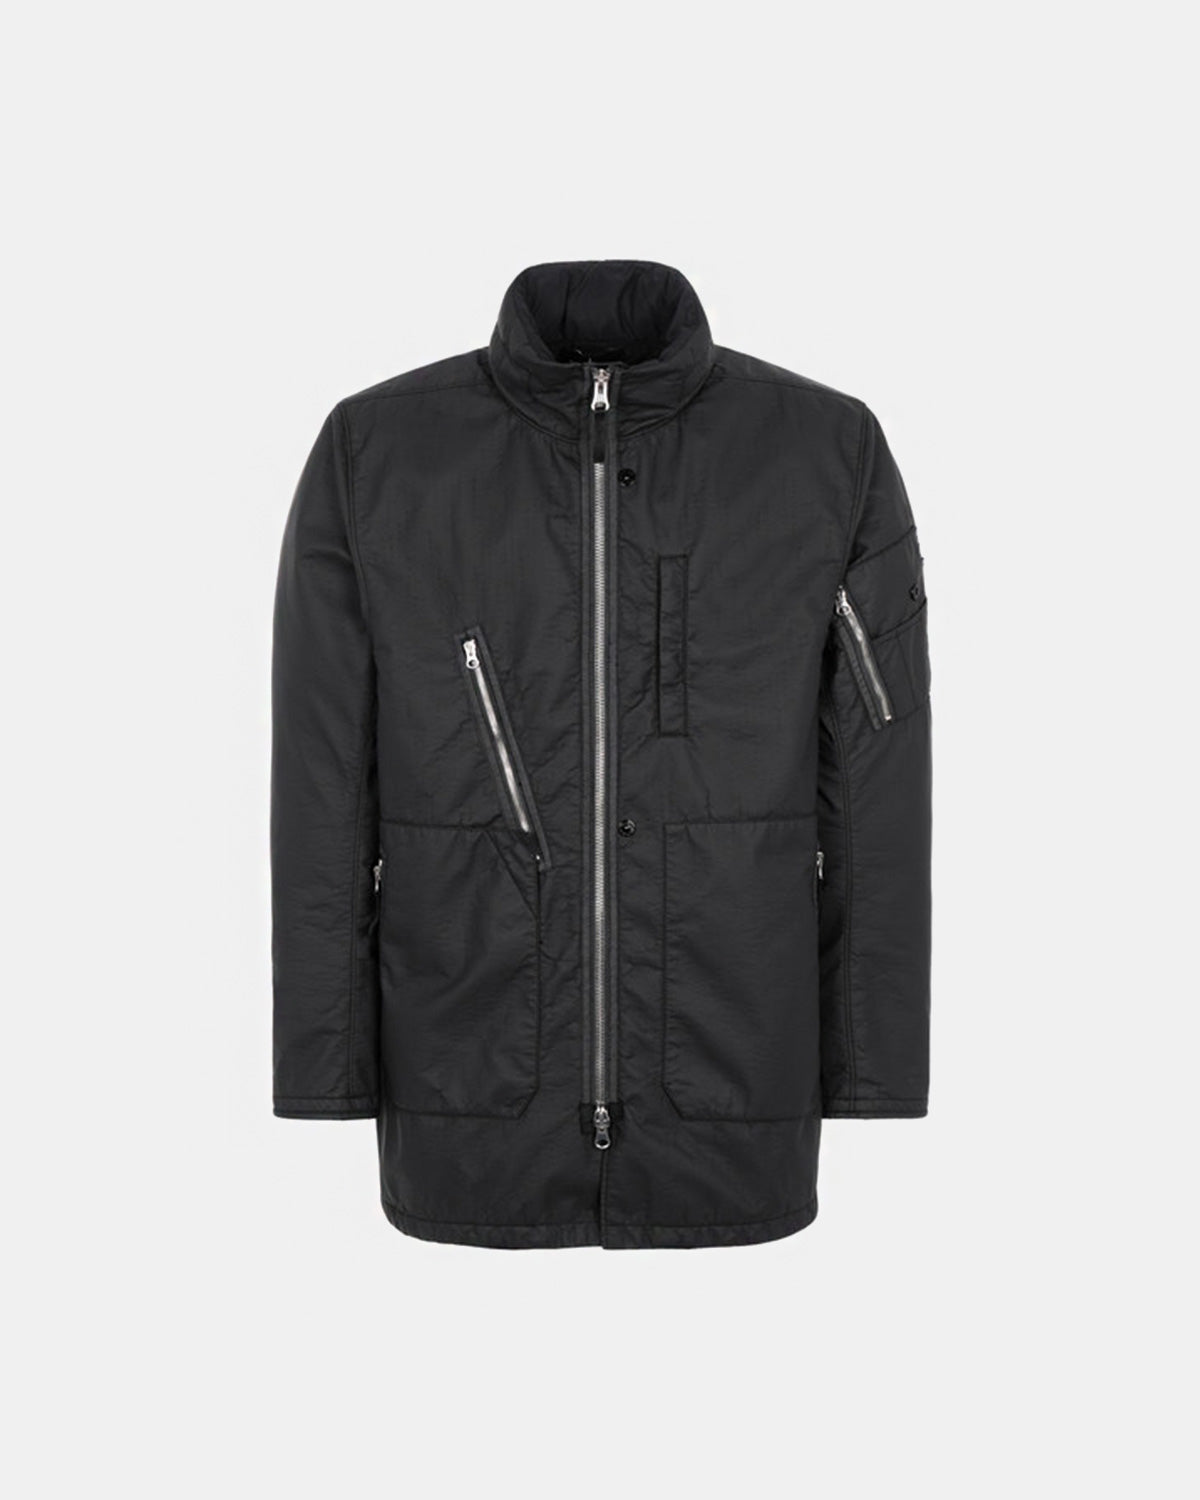 Stone Island - Shadow Project 40904 3/4 Jacket (Black)